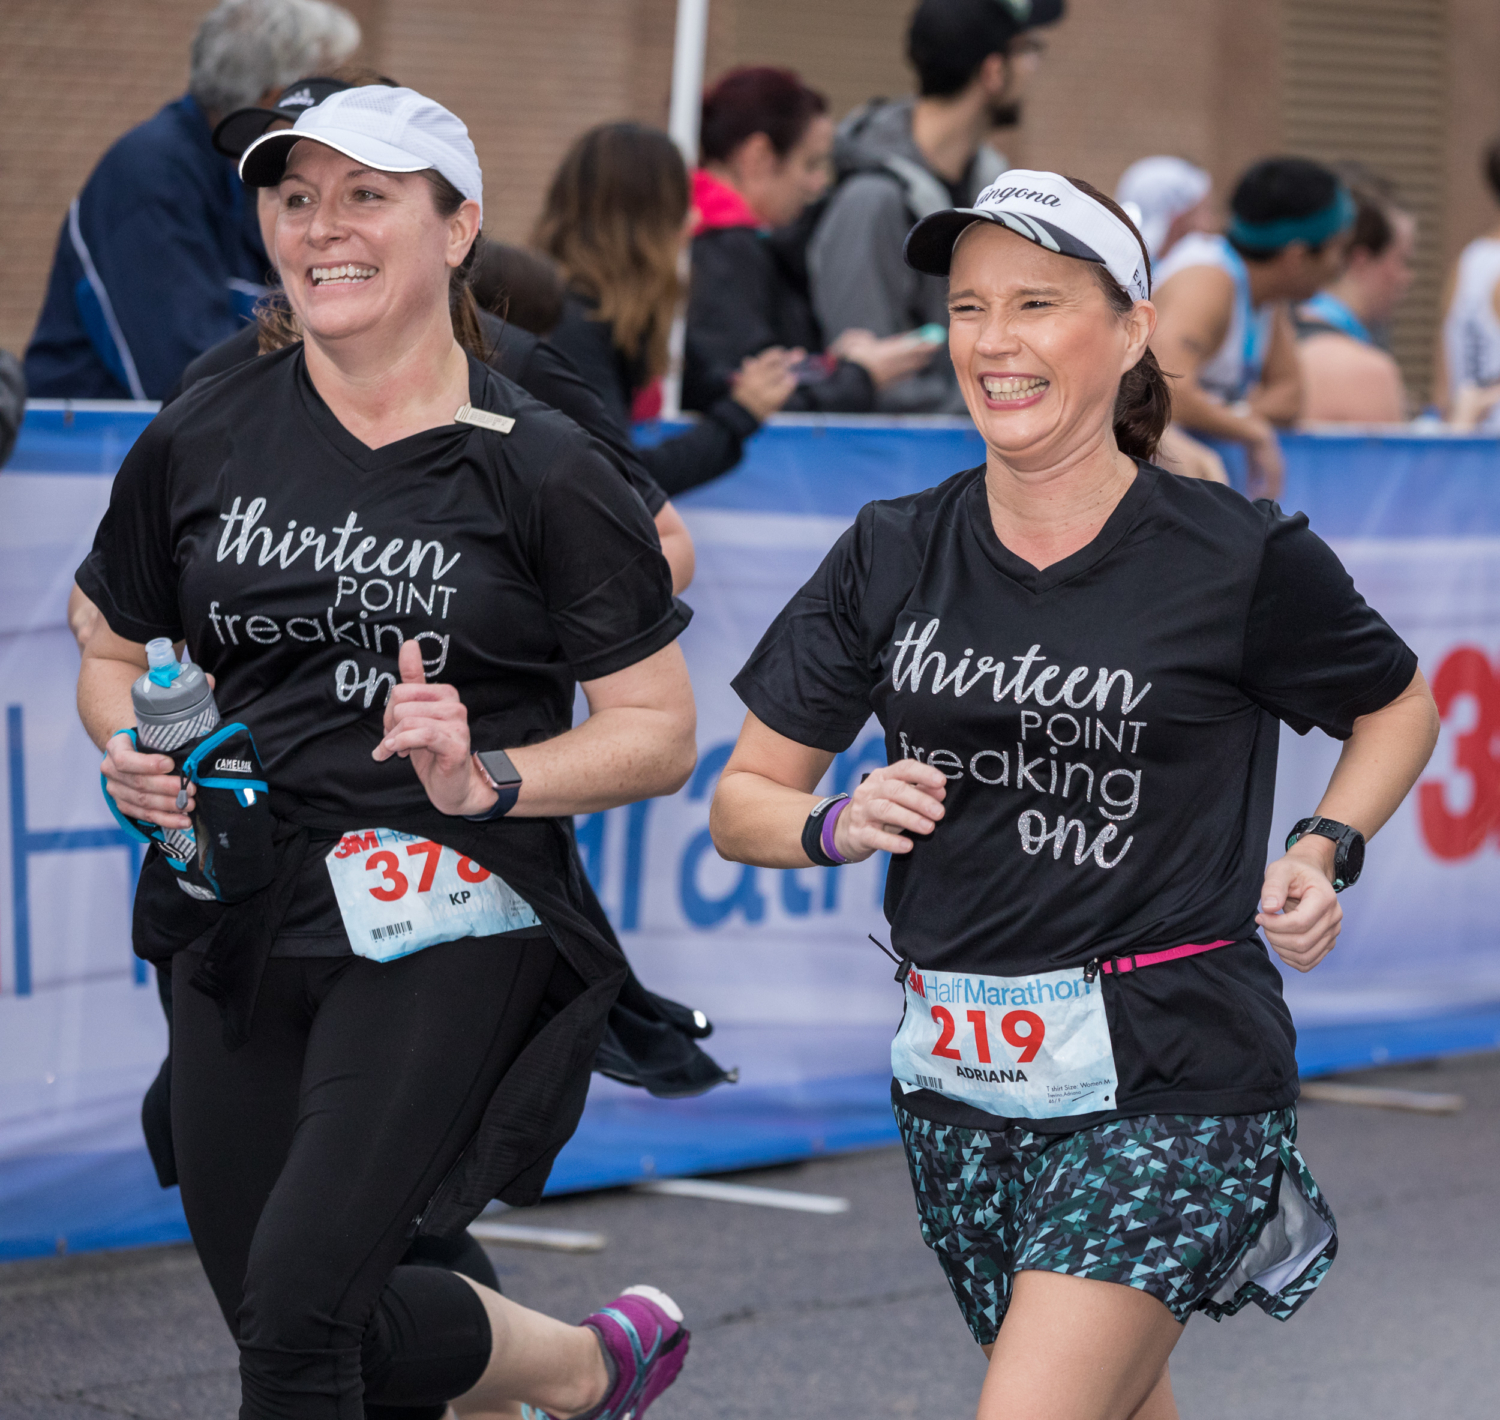 Build your 3M Half Marathon team and make matching shirts!